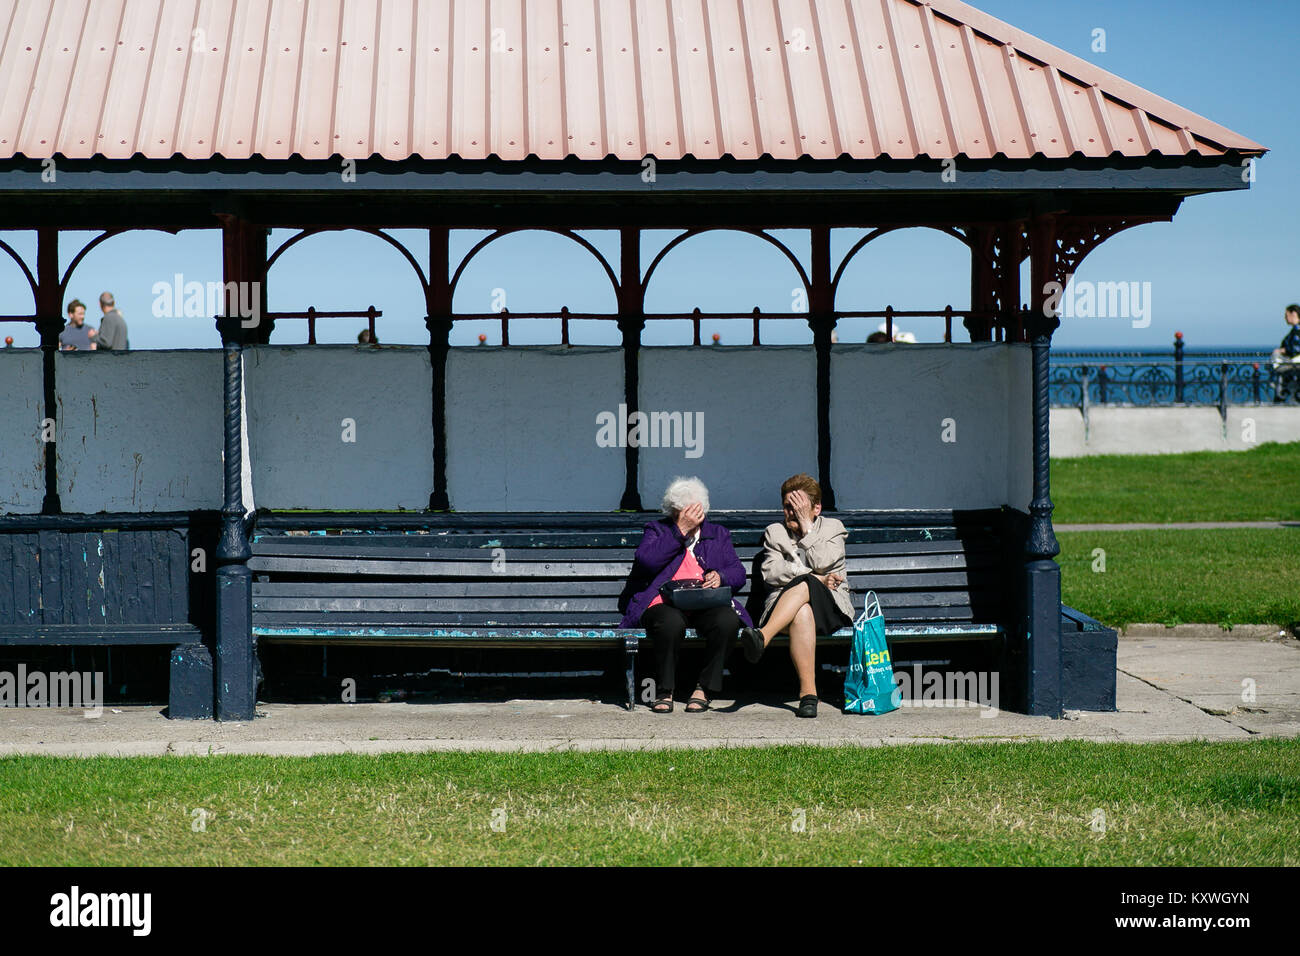 Two elderly women sitting in shelter on the bench and talking on Bray`s promenade in County Wicklow Ireland - Stock Image